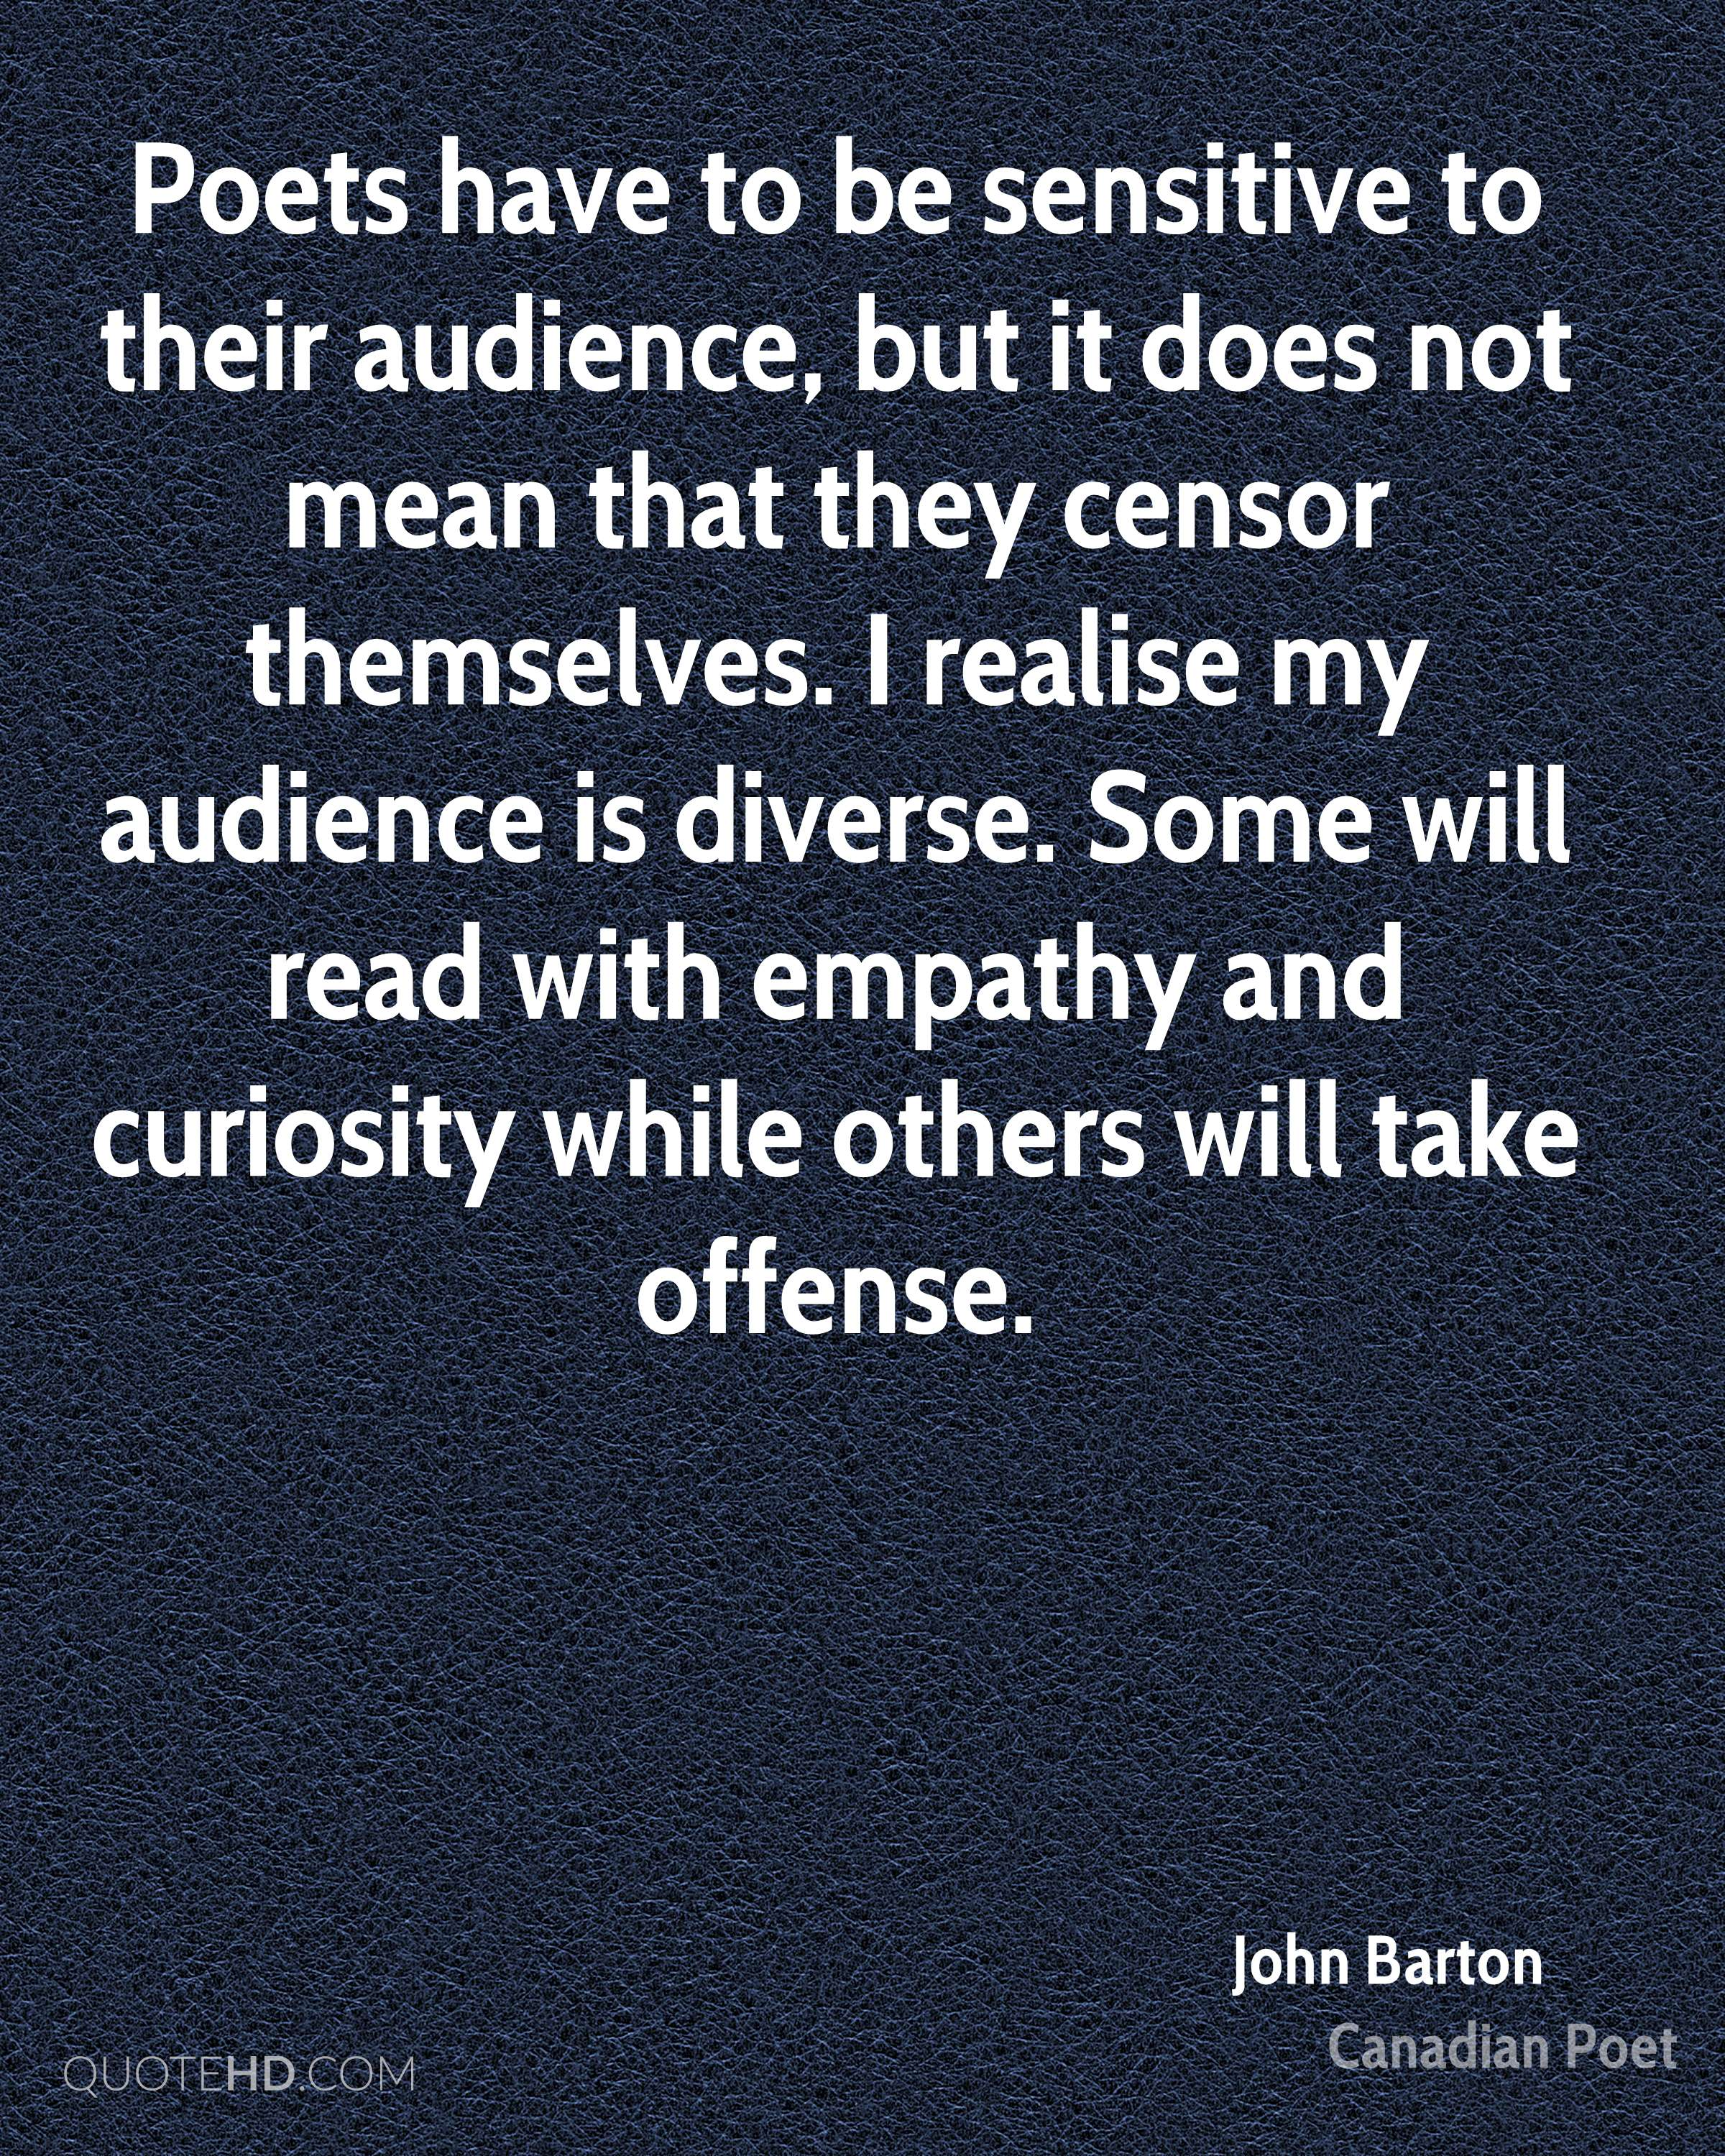 Poets have to be sensitive to their audience, but it does not mean that they censor themselves. I realise my audience is diverse. Some will read with empathy and curiosity while others will take offense.